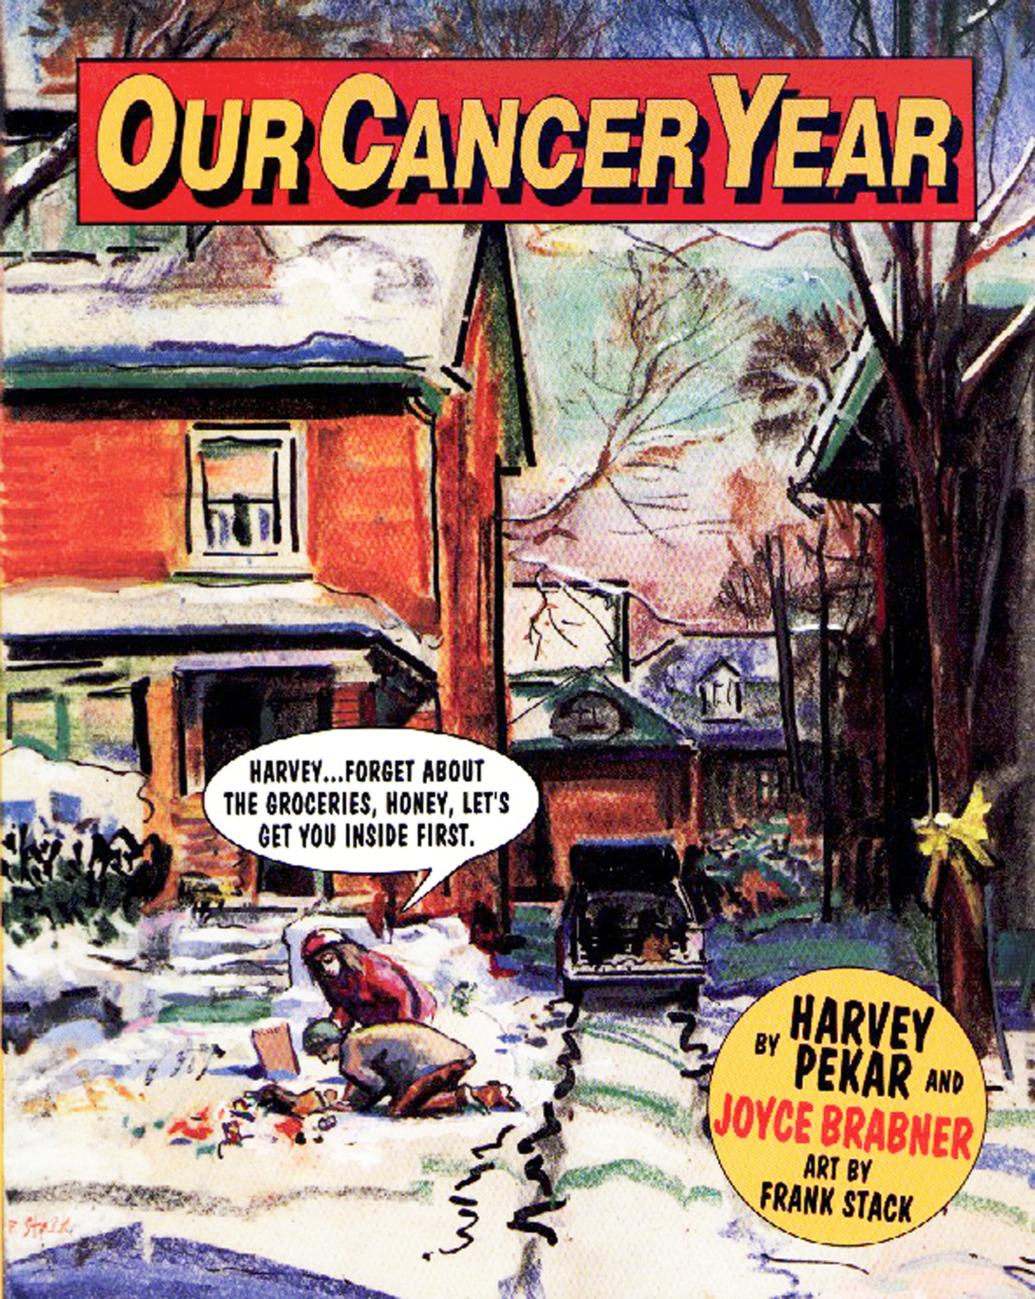 Our Cancer Year   by Harvey Pekar (via      Rolling Ston  e   )